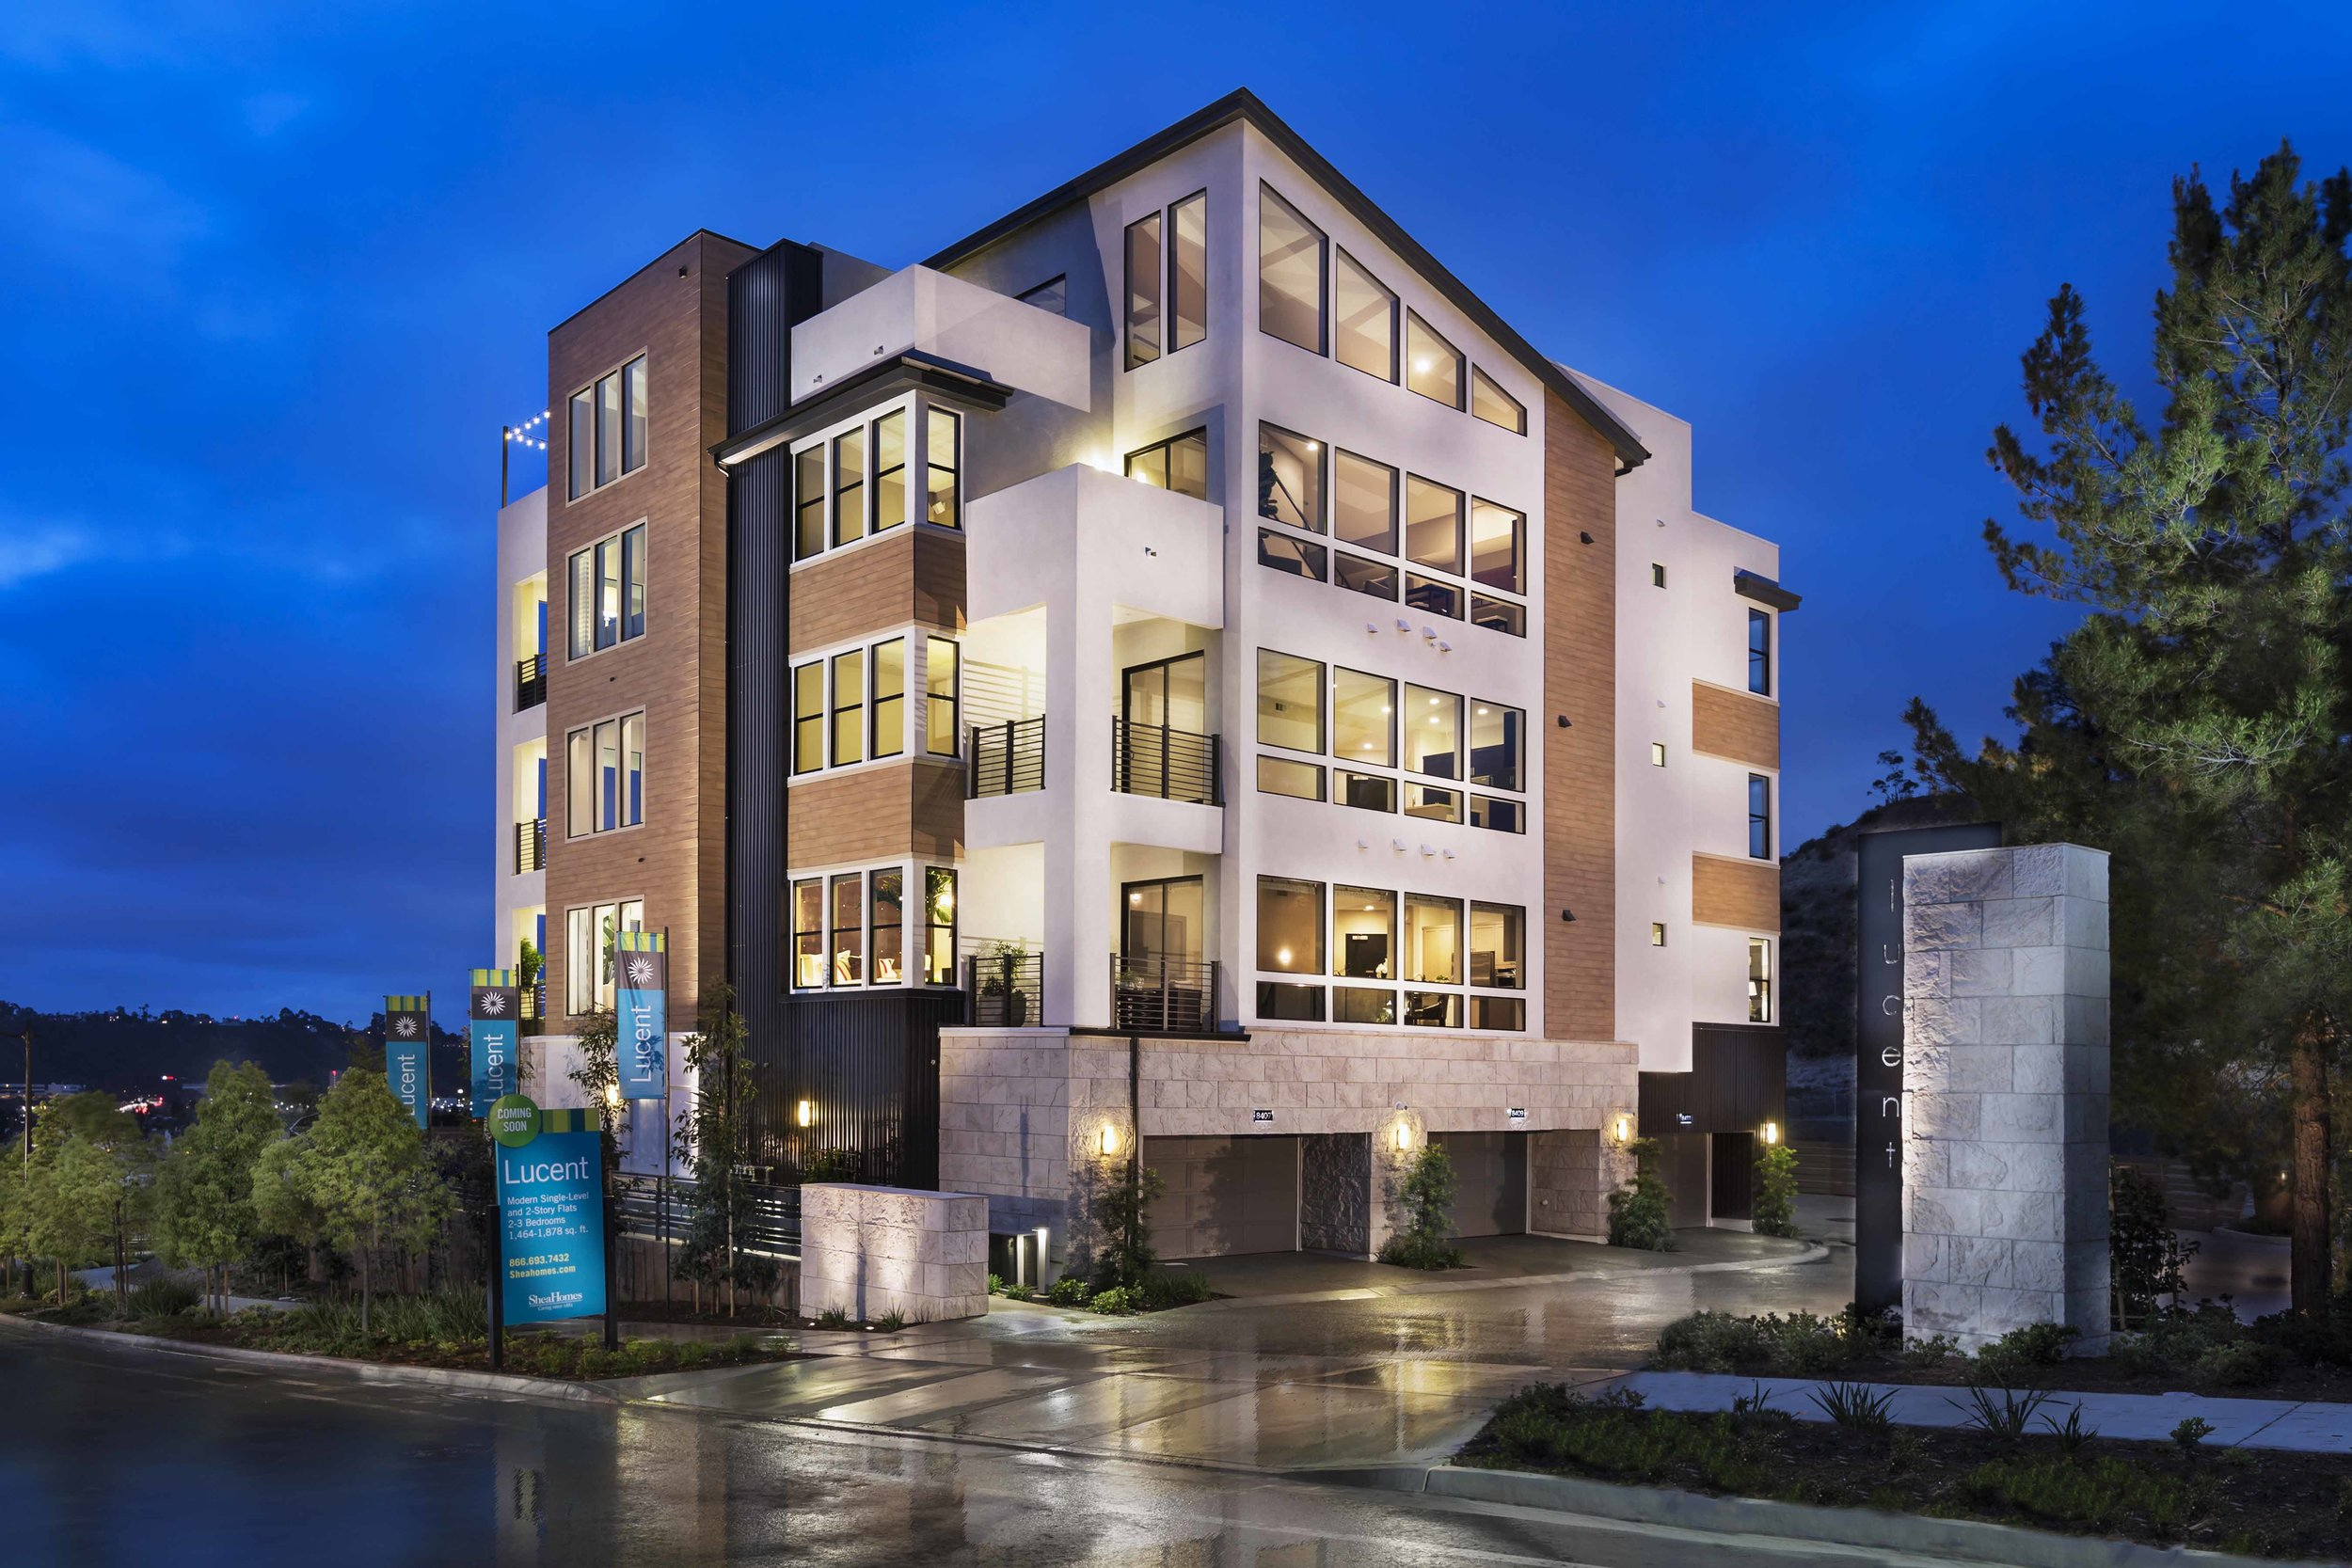 Lucent     San Diego, California    AWARDS  +  2015 SoCal Award  for Best Architectural Design of an Attached Home Plan  +  2015 Gold Nugget Award  of Merit for Best Multi-Family Housing Project Between 18-30 DU / Ac.